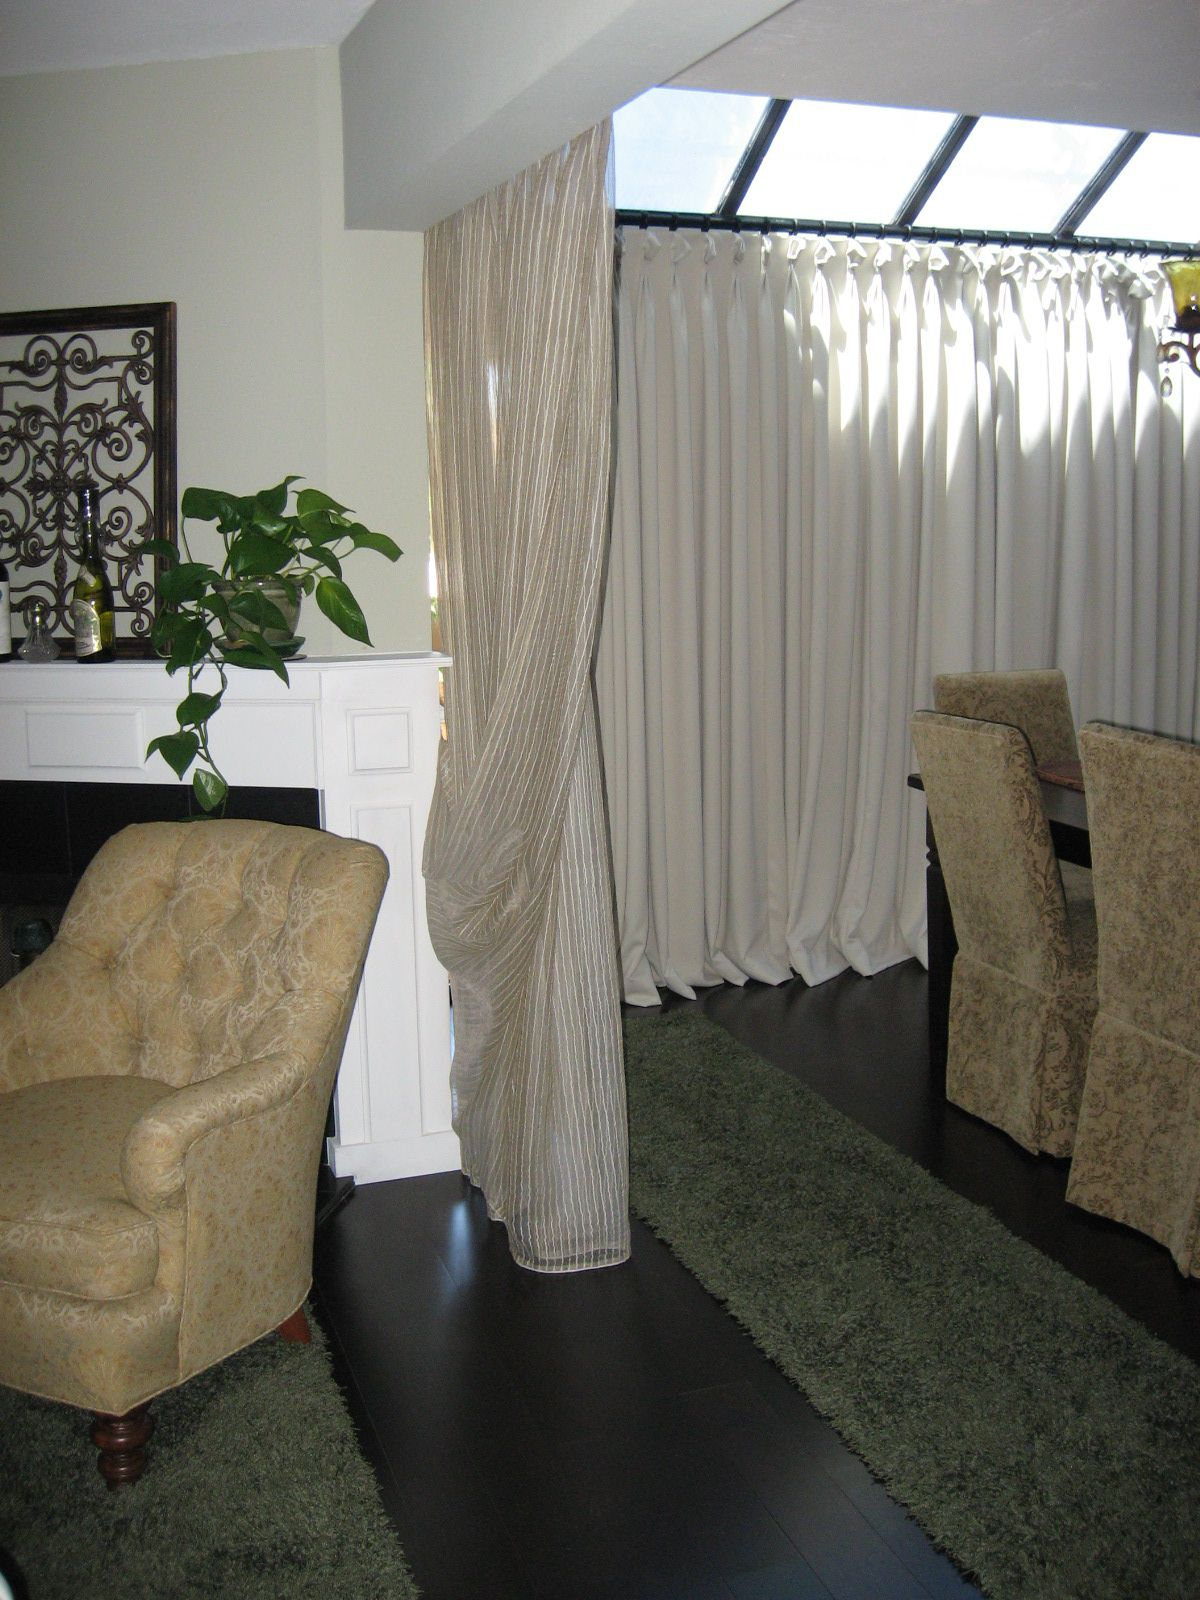 Portable Curtain Room Dividers Go to ChineseFurnitureShopcom for